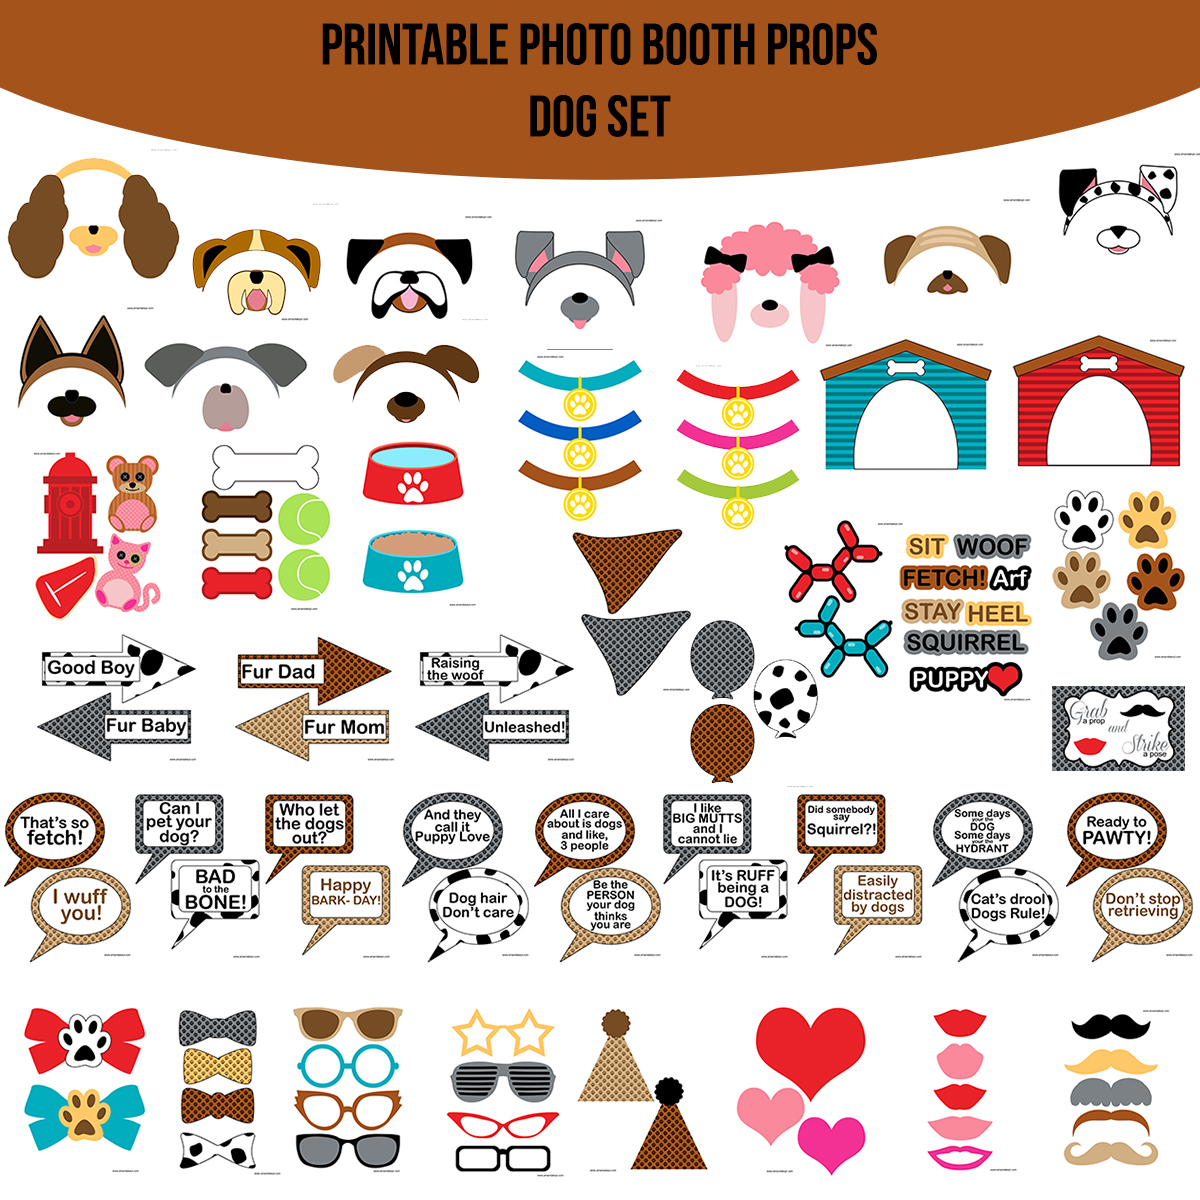 See the Set - To View The Whole Dog Doggy Puppy Printable Photo Booth Prop Set Click Here